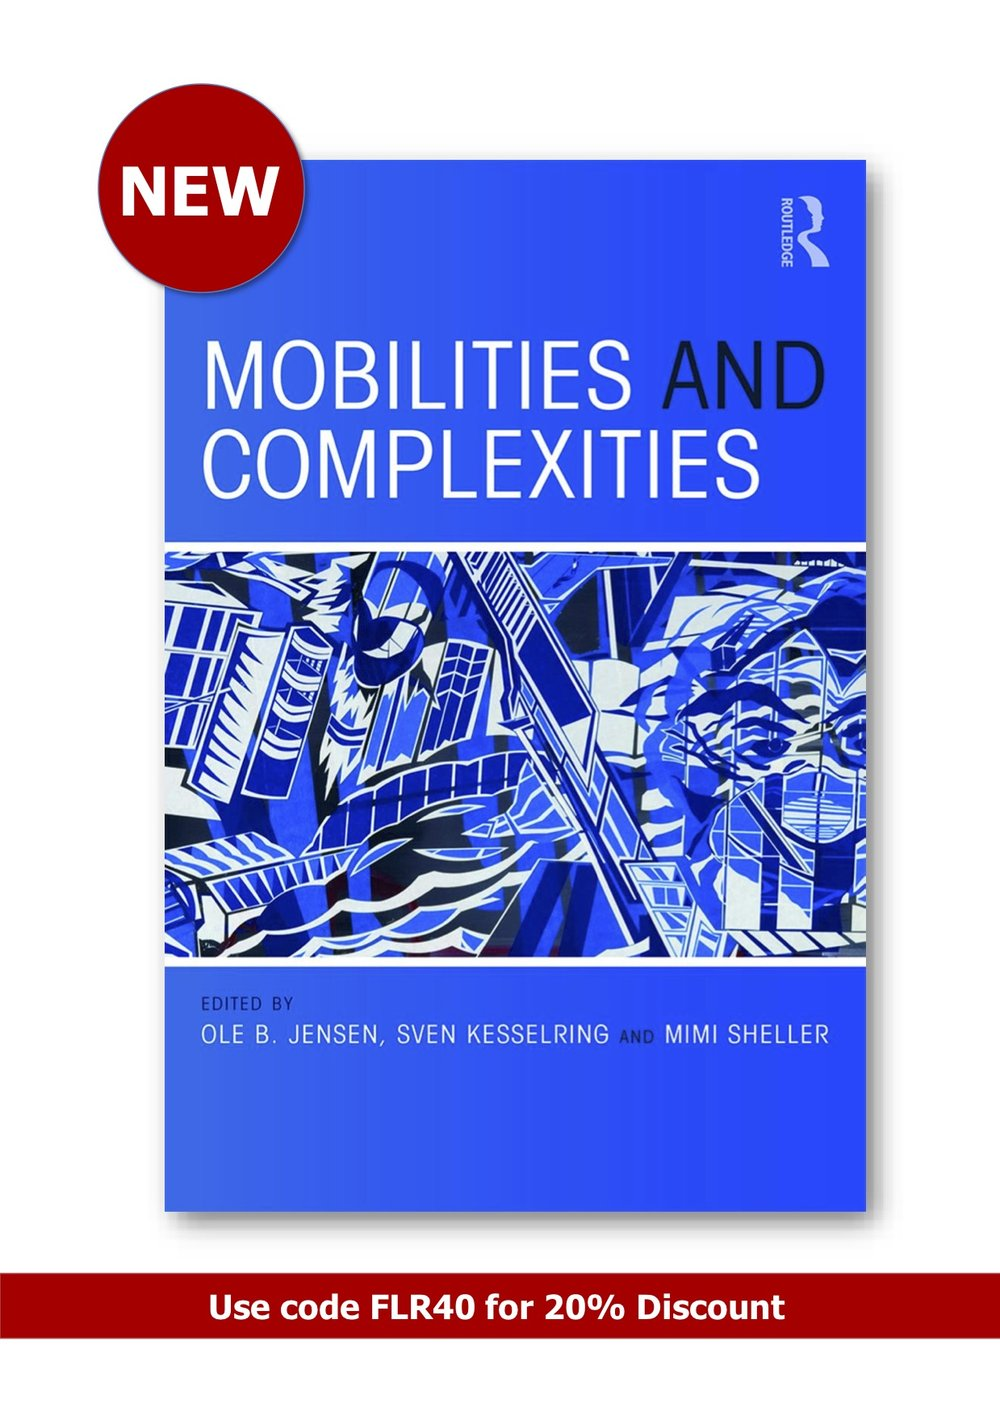 9781138601437_Mobilities and Complexities POSTER[2].jpg